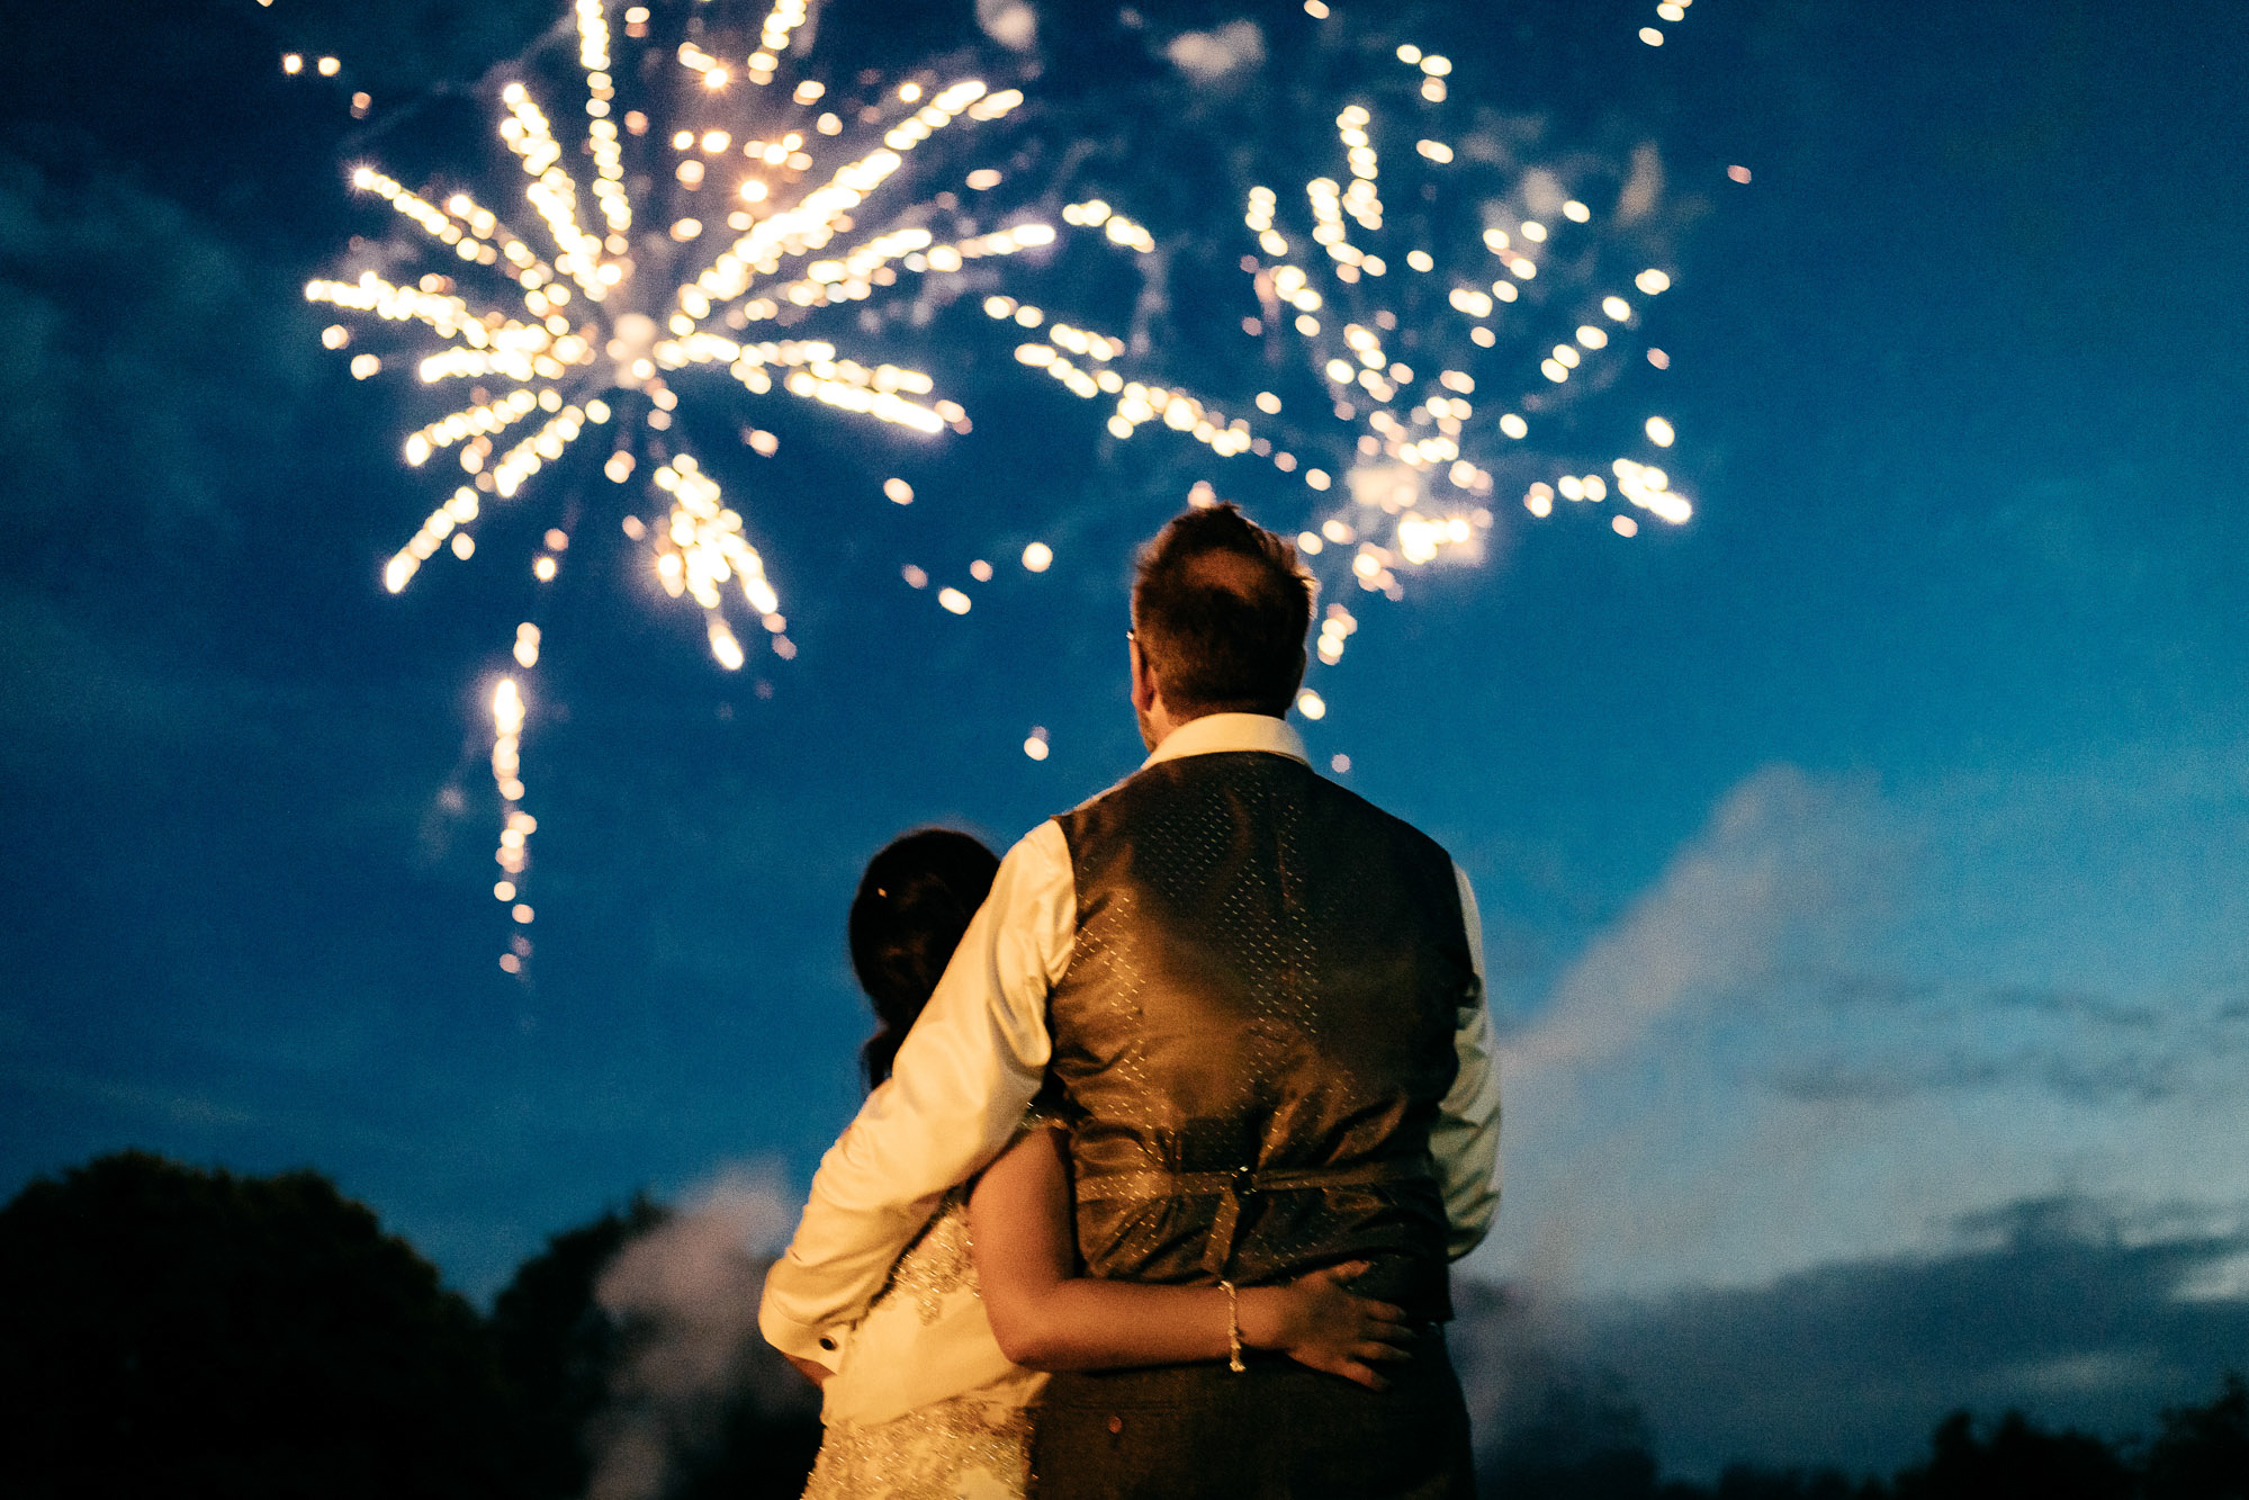 bride and groom embrace and enjoy fireworks finale to wedding reception